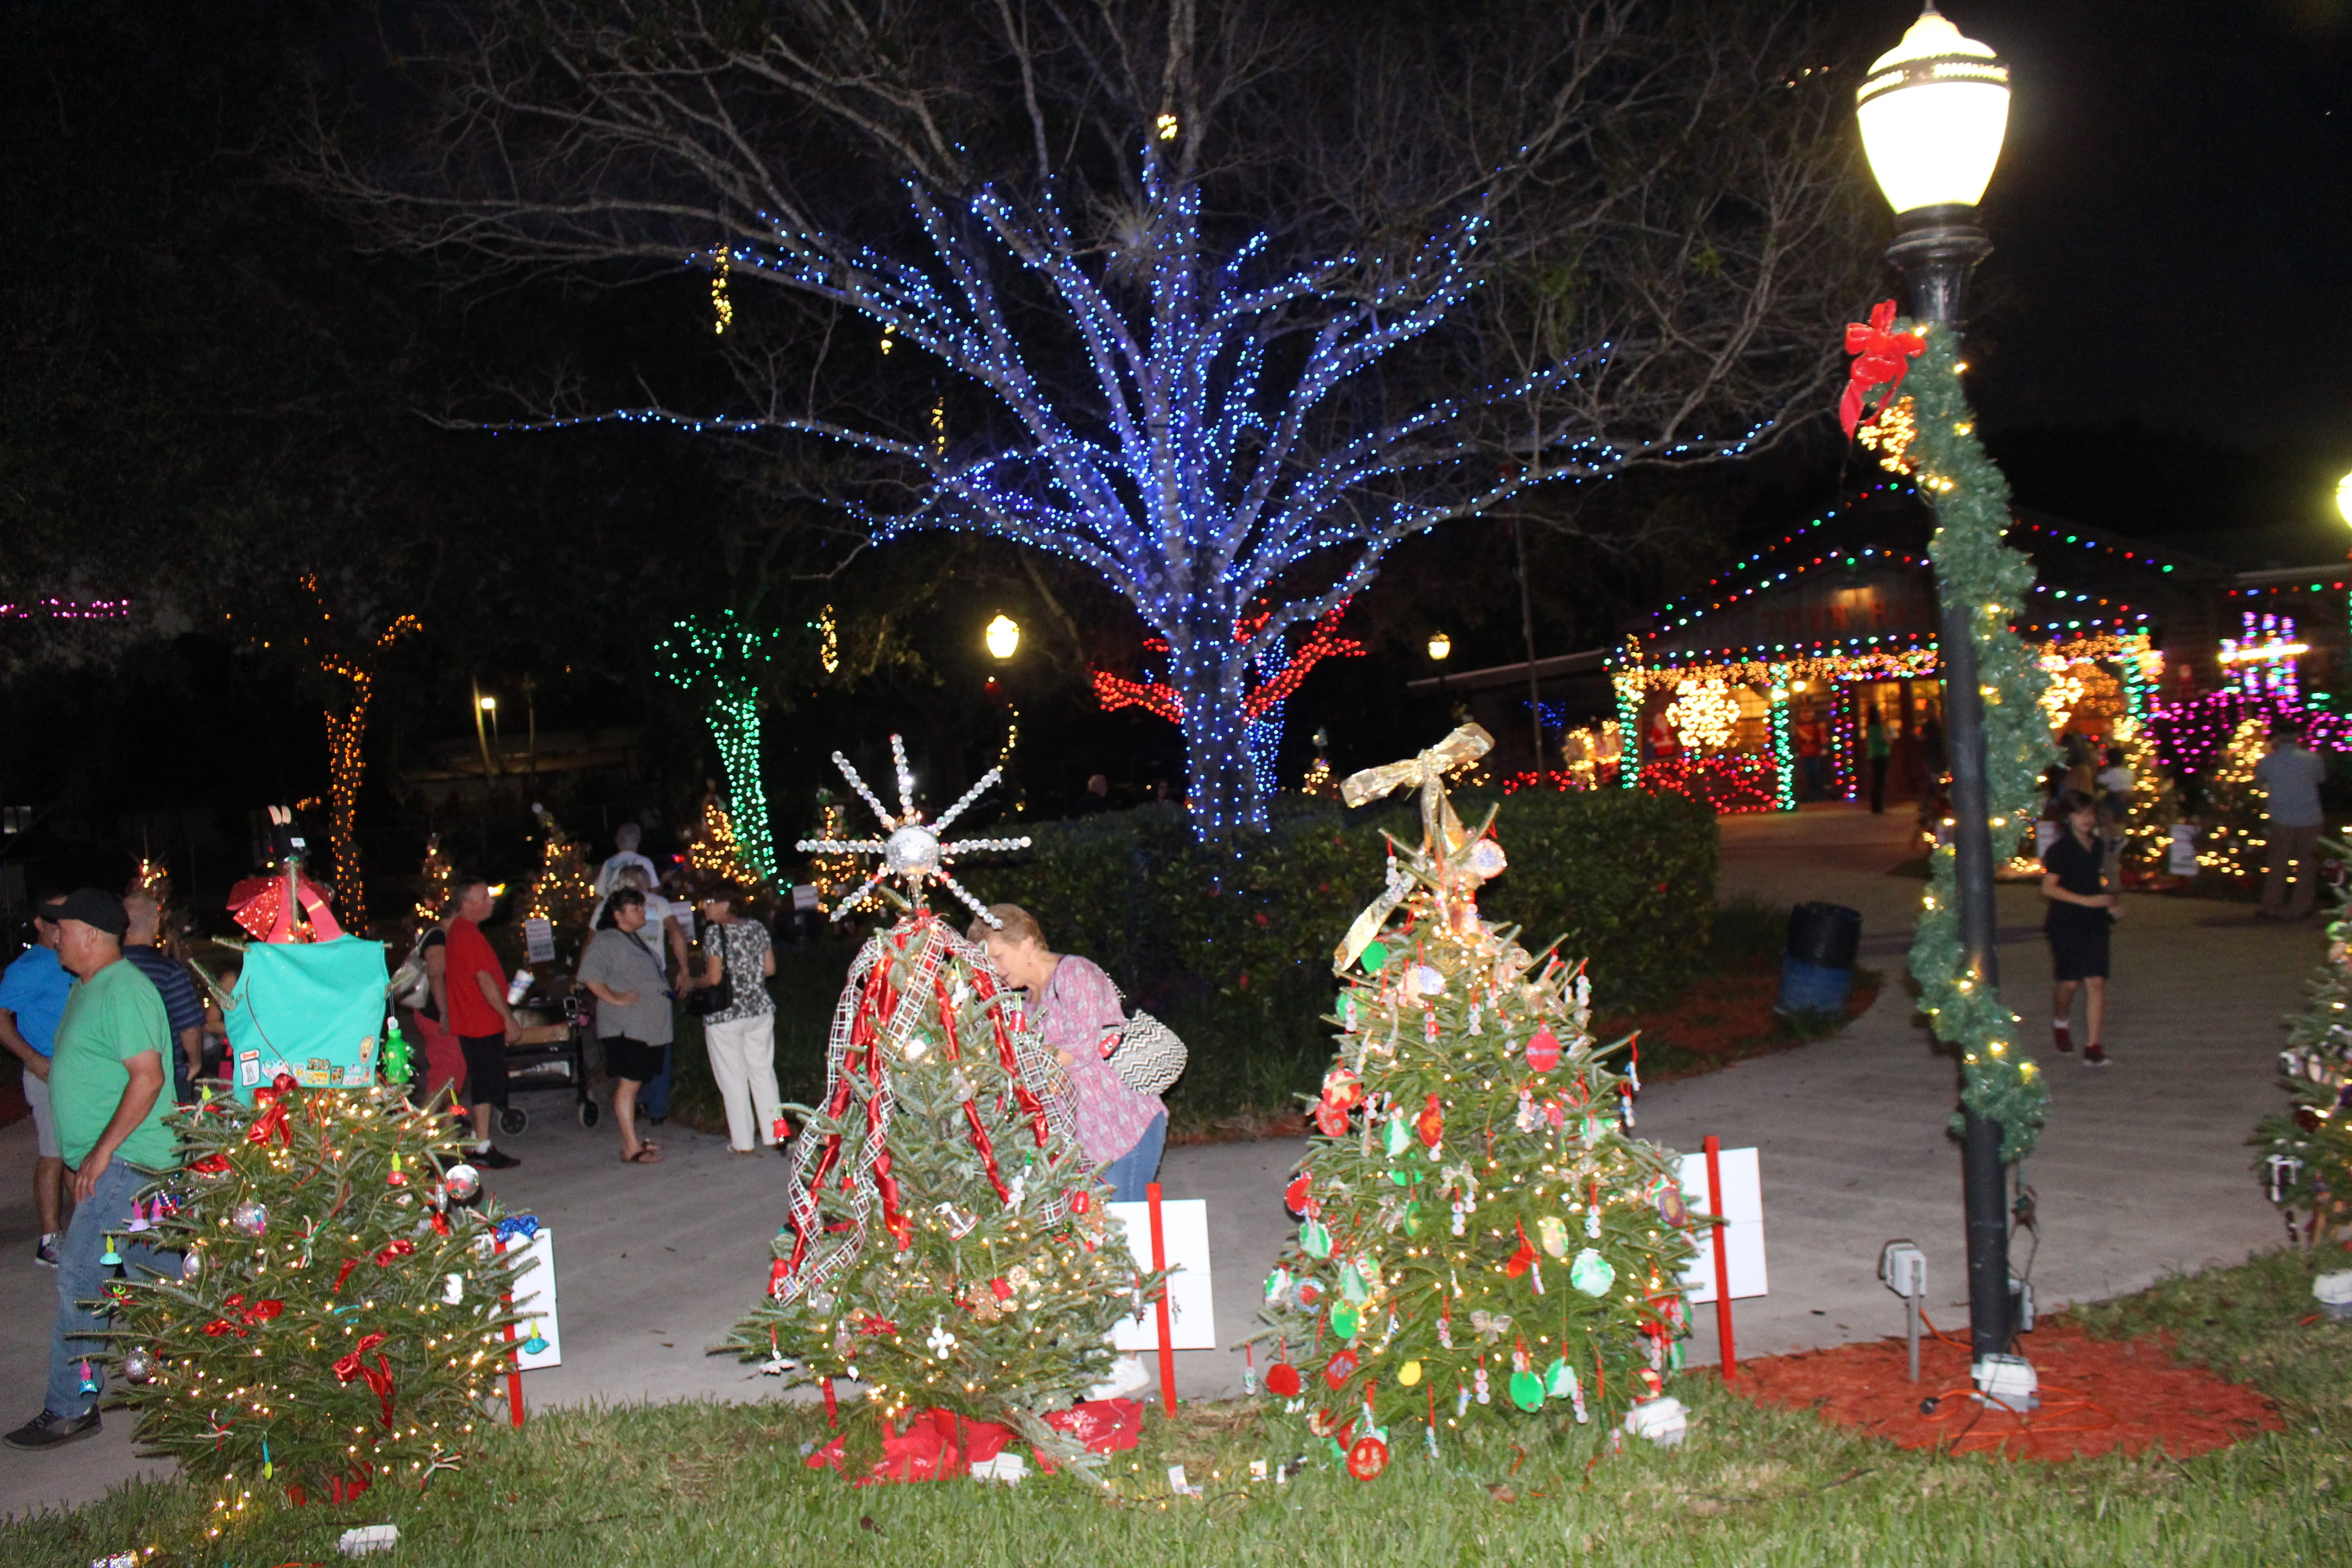 Davie lights up for the holidays | The Current